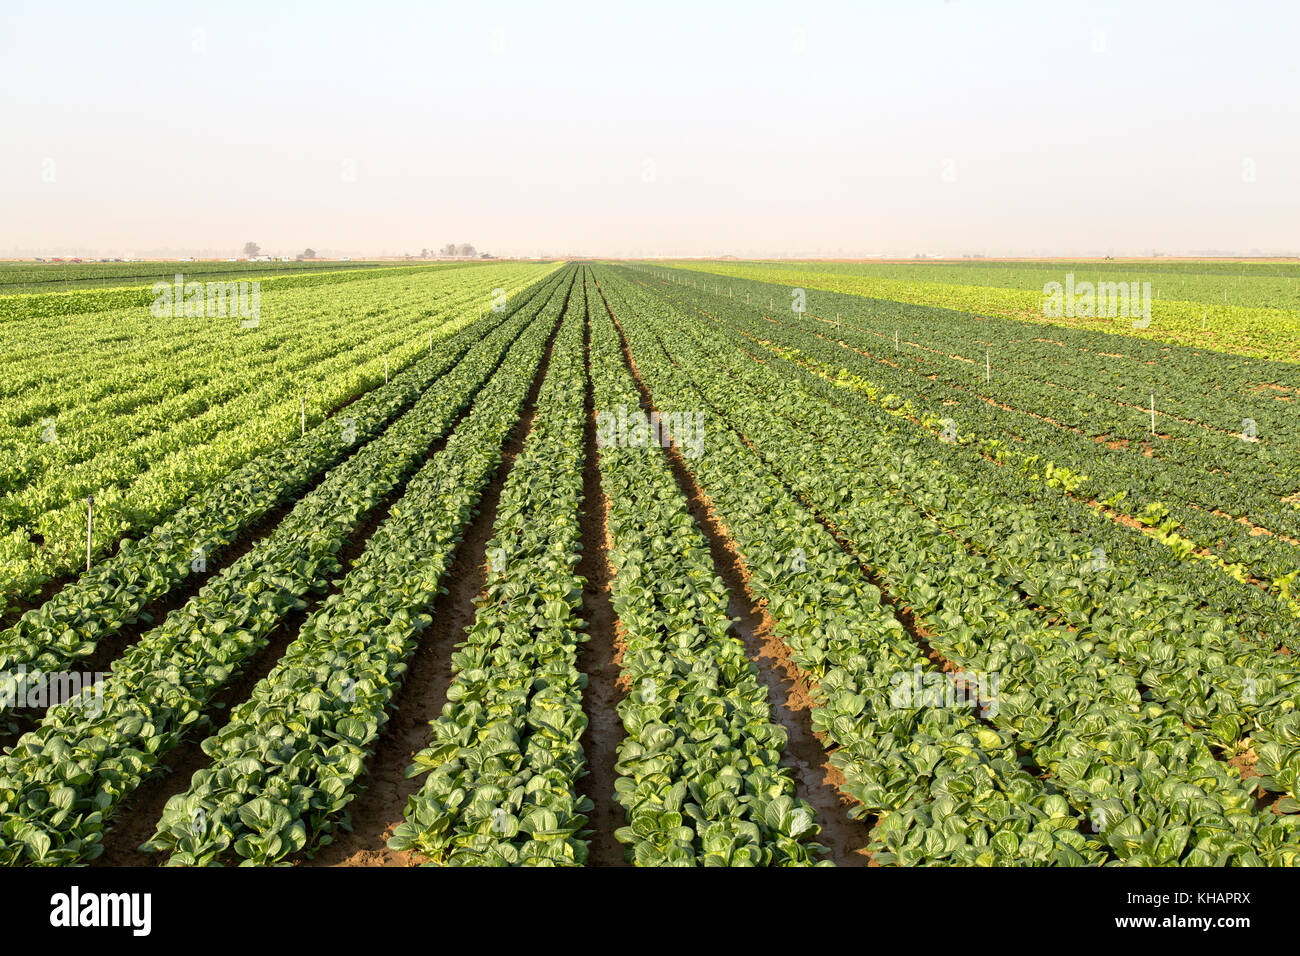 Rows of Baby Bok Choy 'Brassica rapa' var.  chenensis' with Pea 'Pisum sativum'  crop maturing - Stock Image